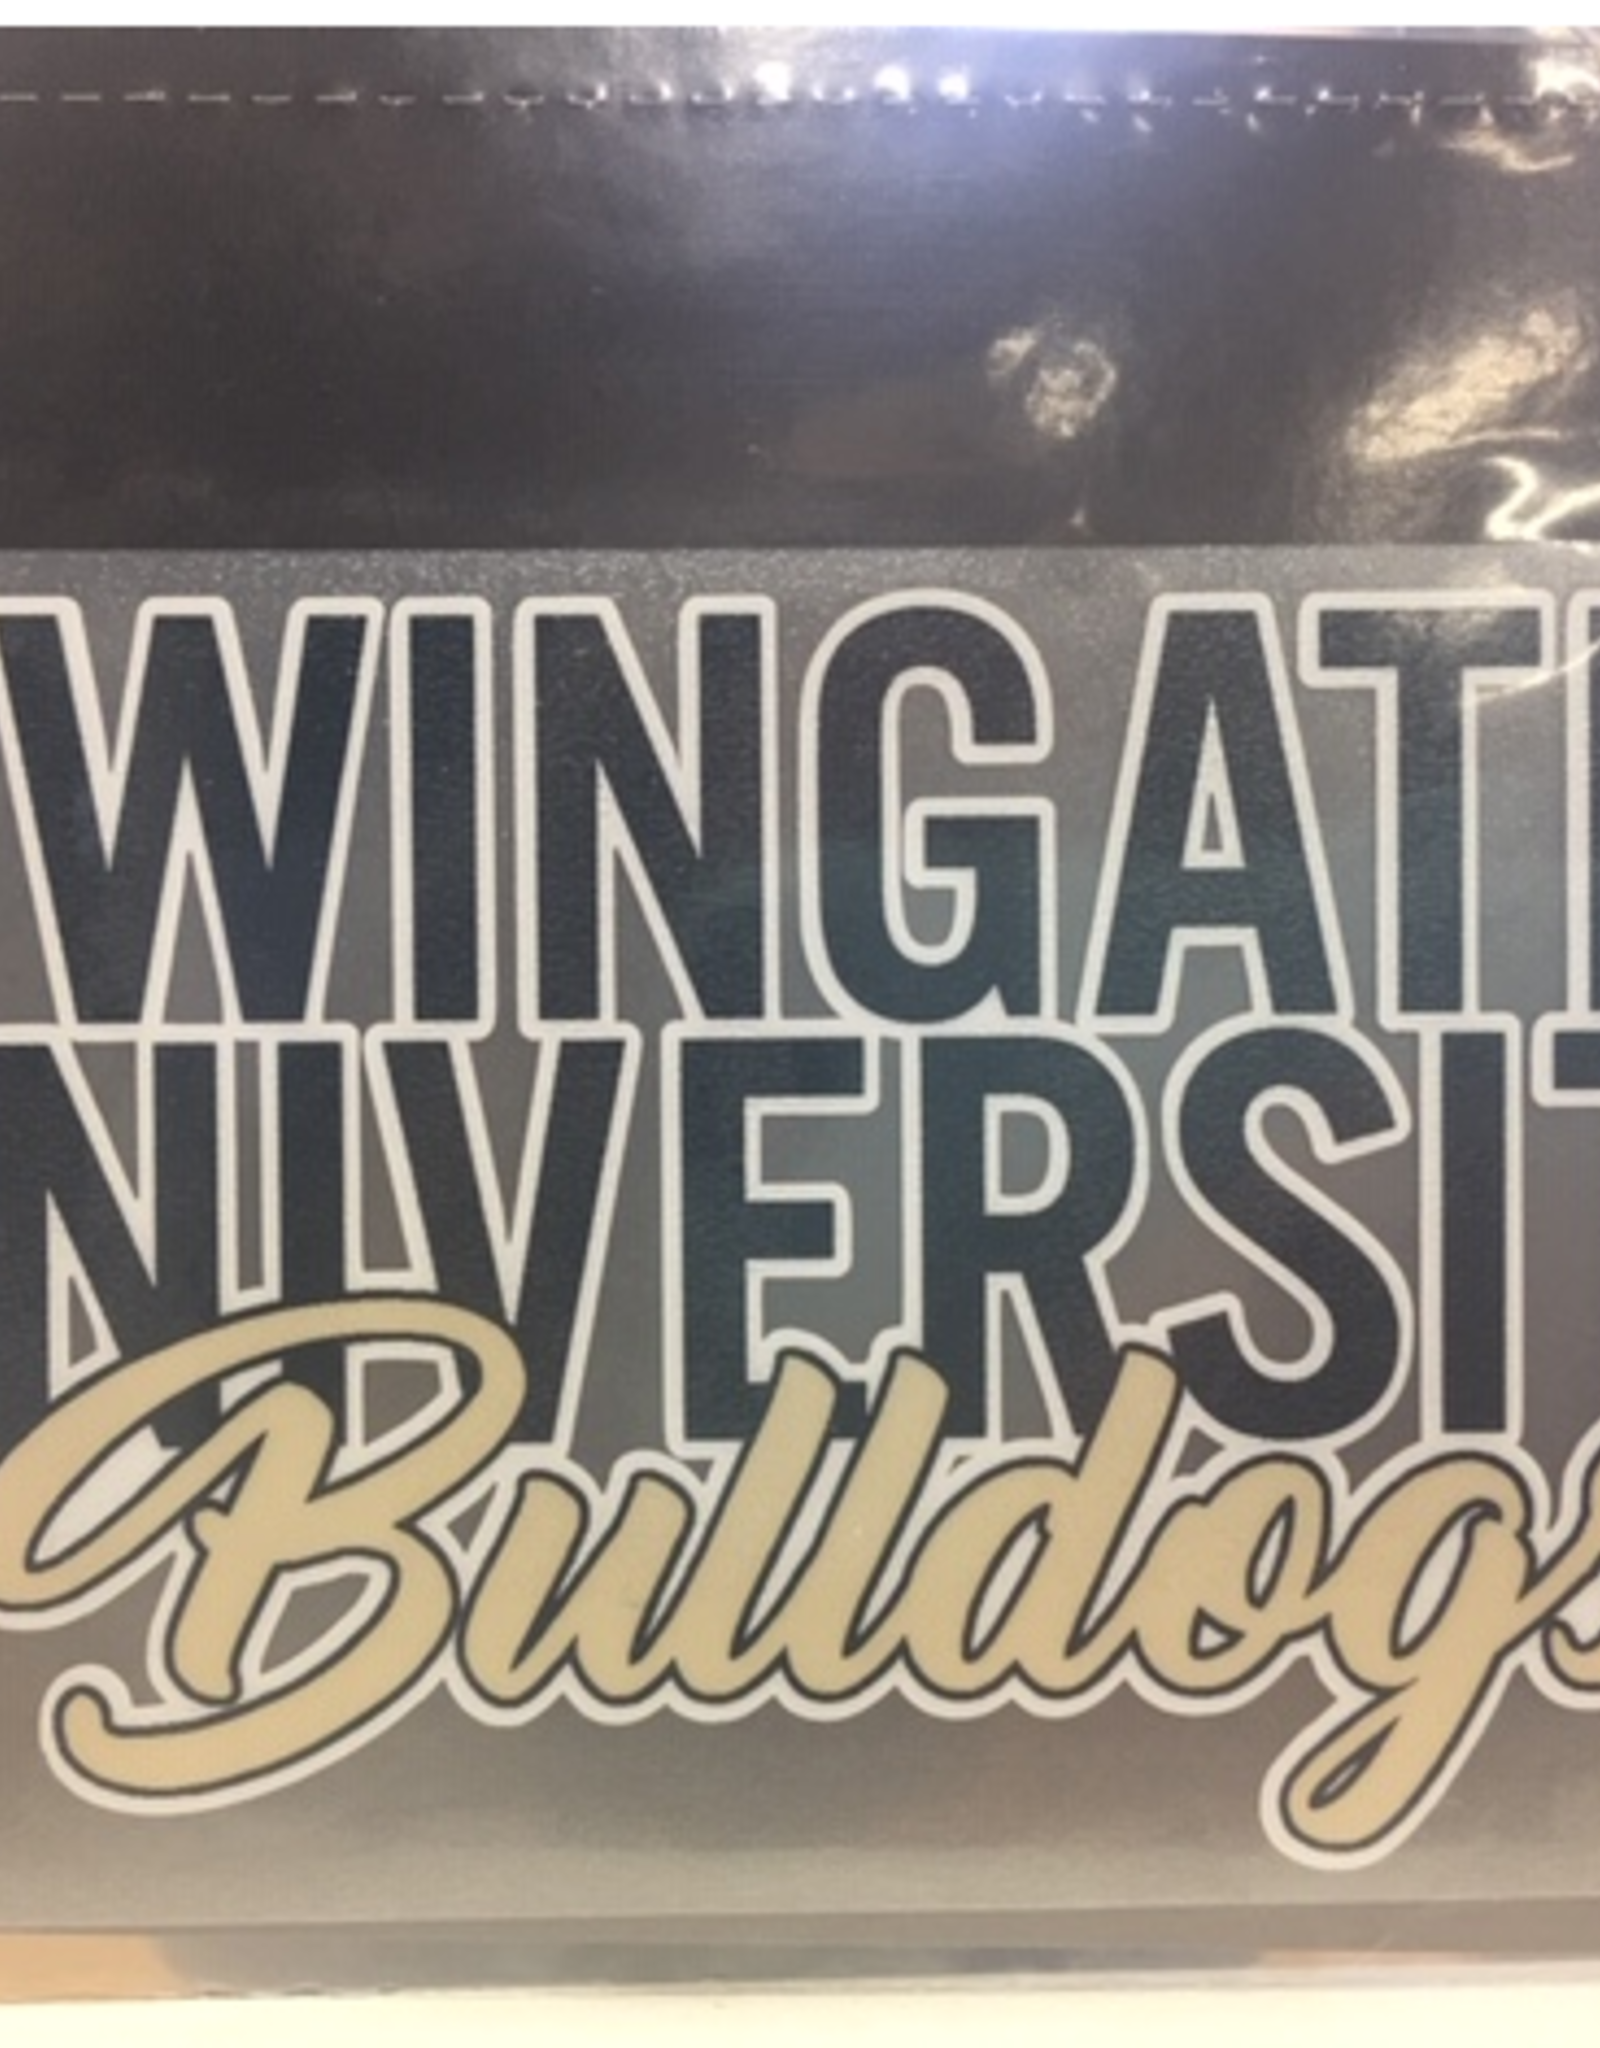 Color Shock Wingate University Navy Over Bulldogs Gold Script